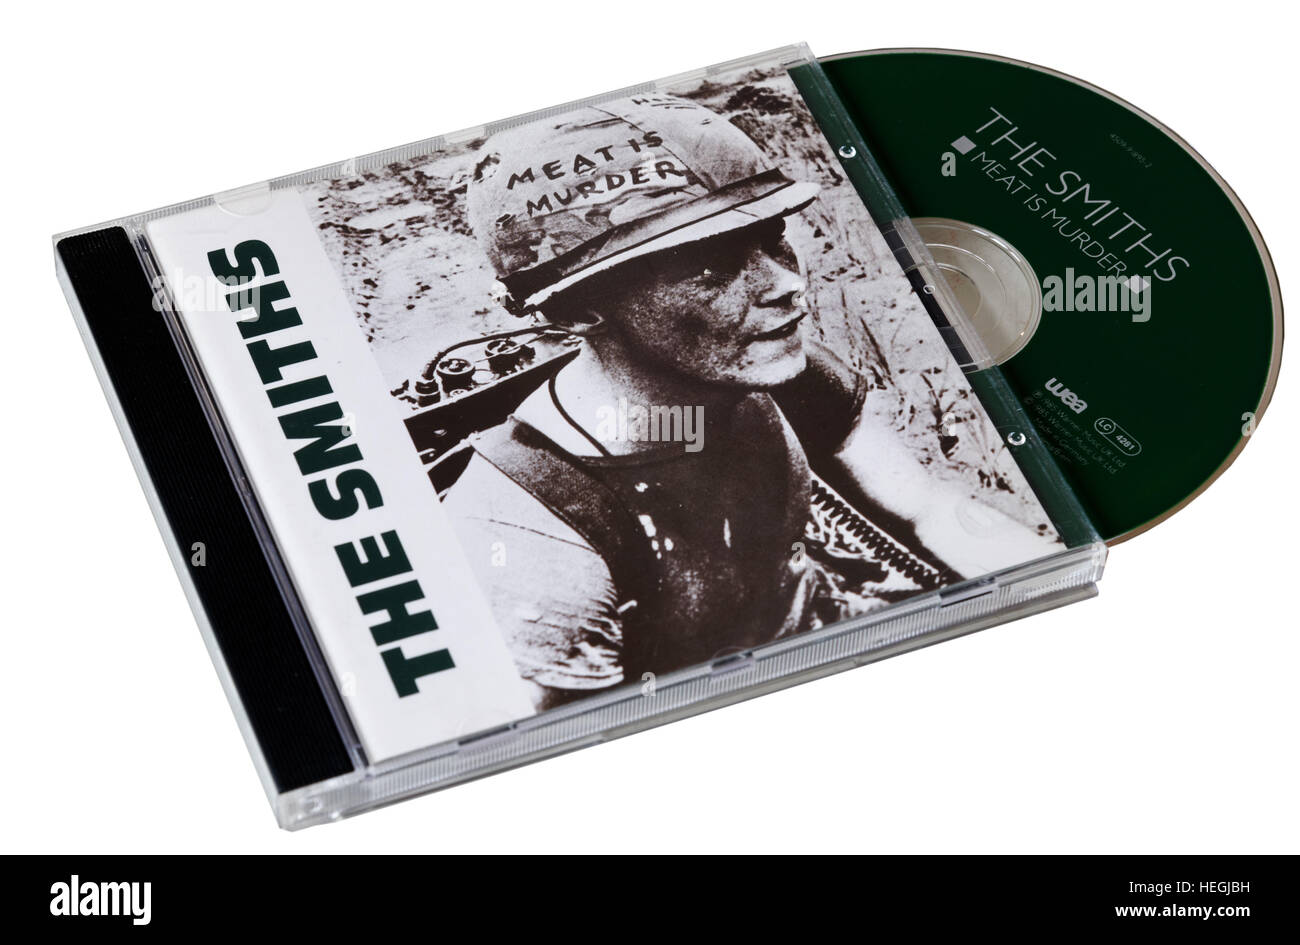 The Smiths Meat is Murder CD - Stock Image